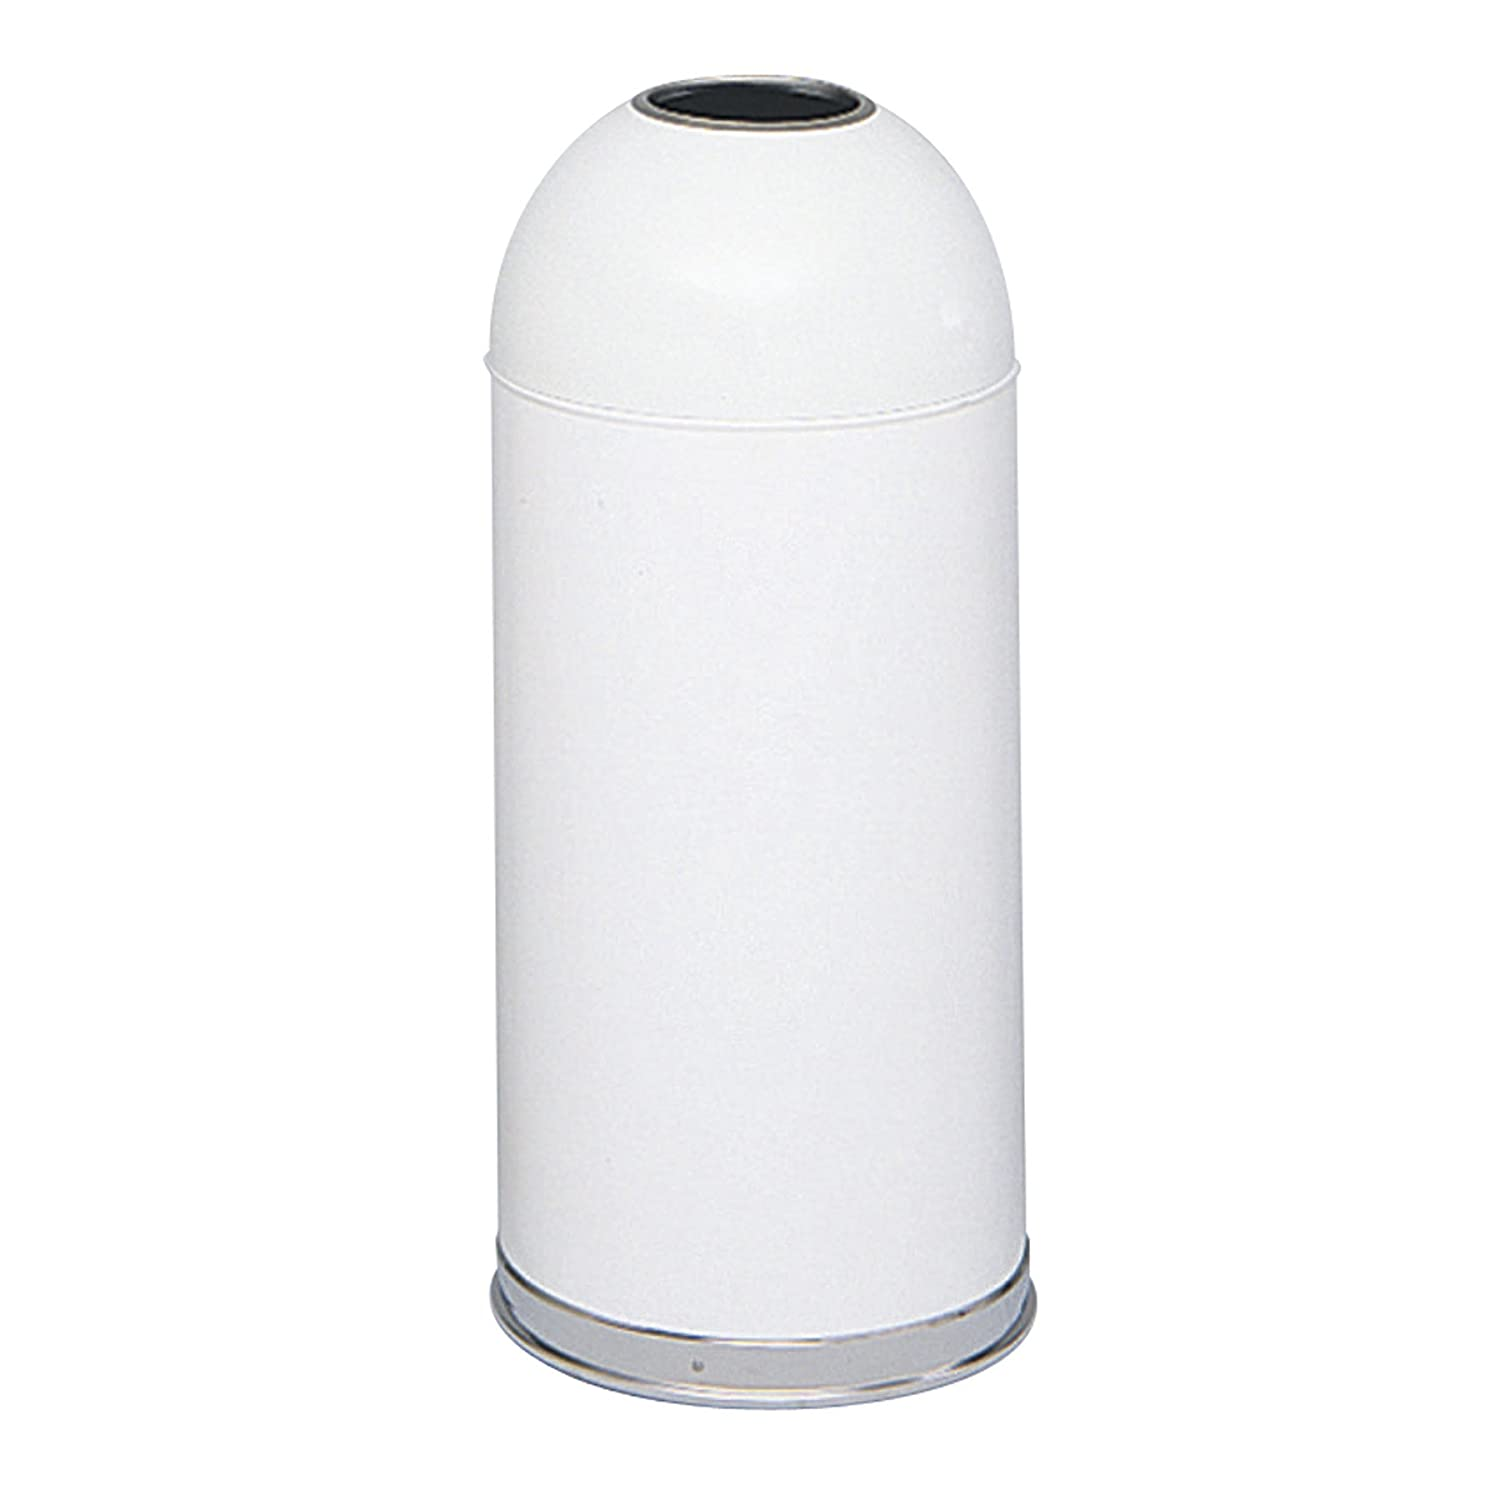 2ef774efb74 Amazon.com  Safco Products 9639WH Open Top Dome Trash Can